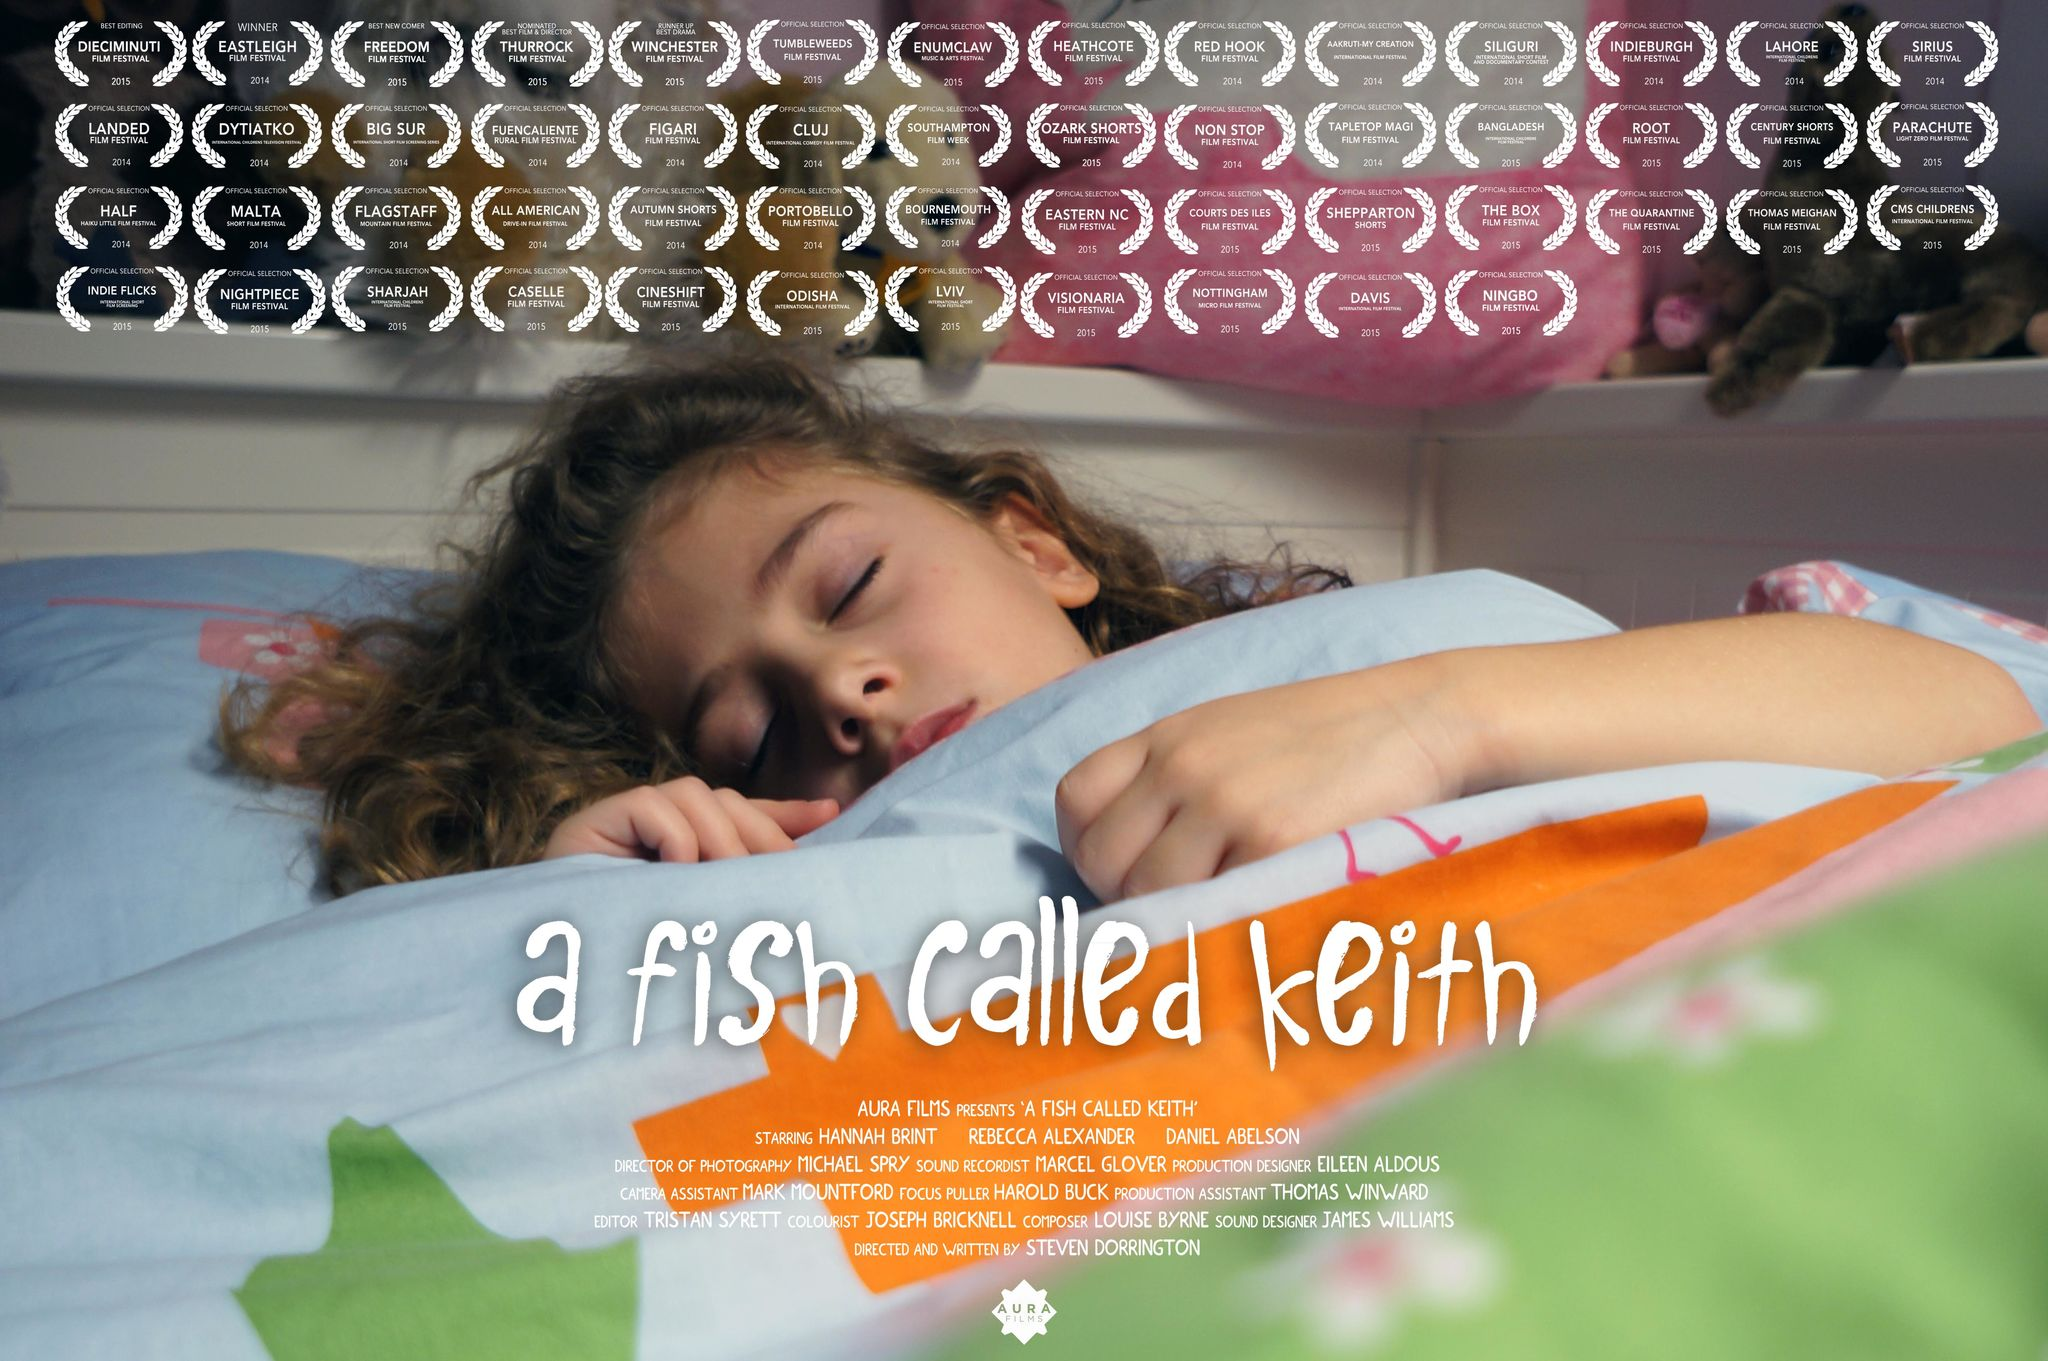 A Fish Called Keith